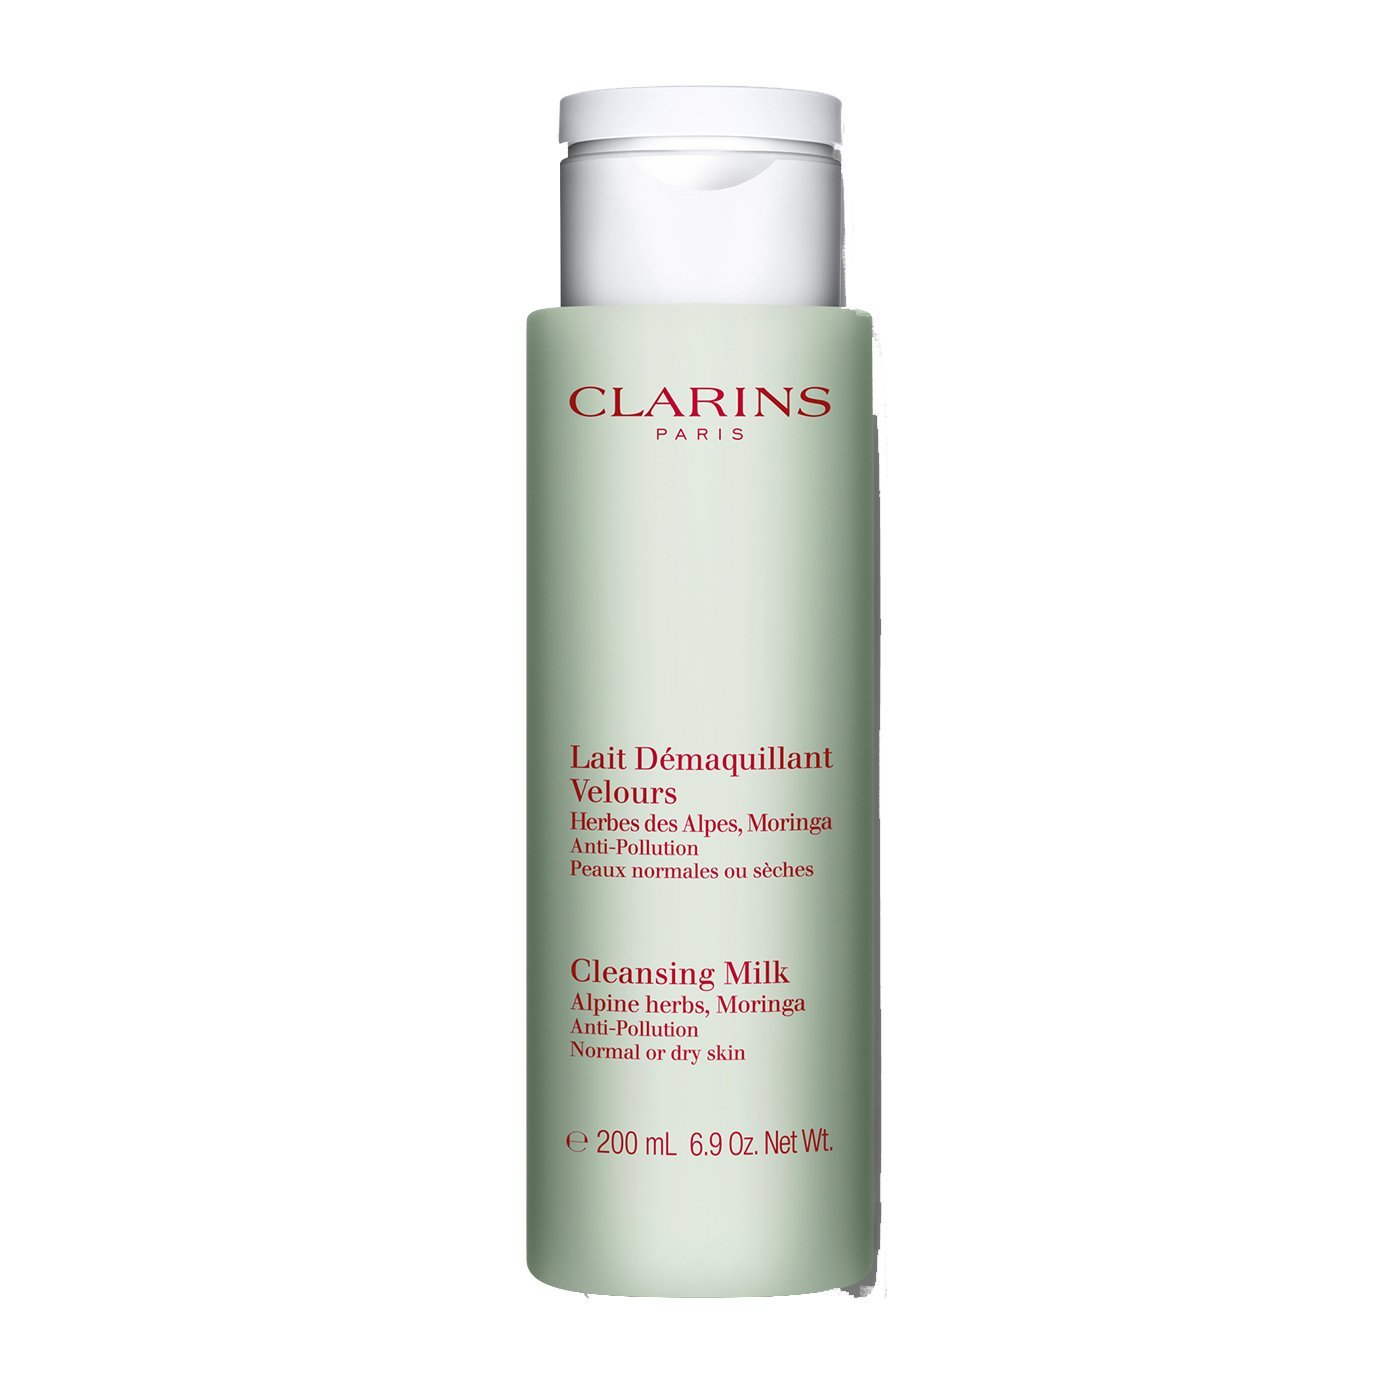 Cleansing Milk with Alpine Herbs Moringa by Clarins #13